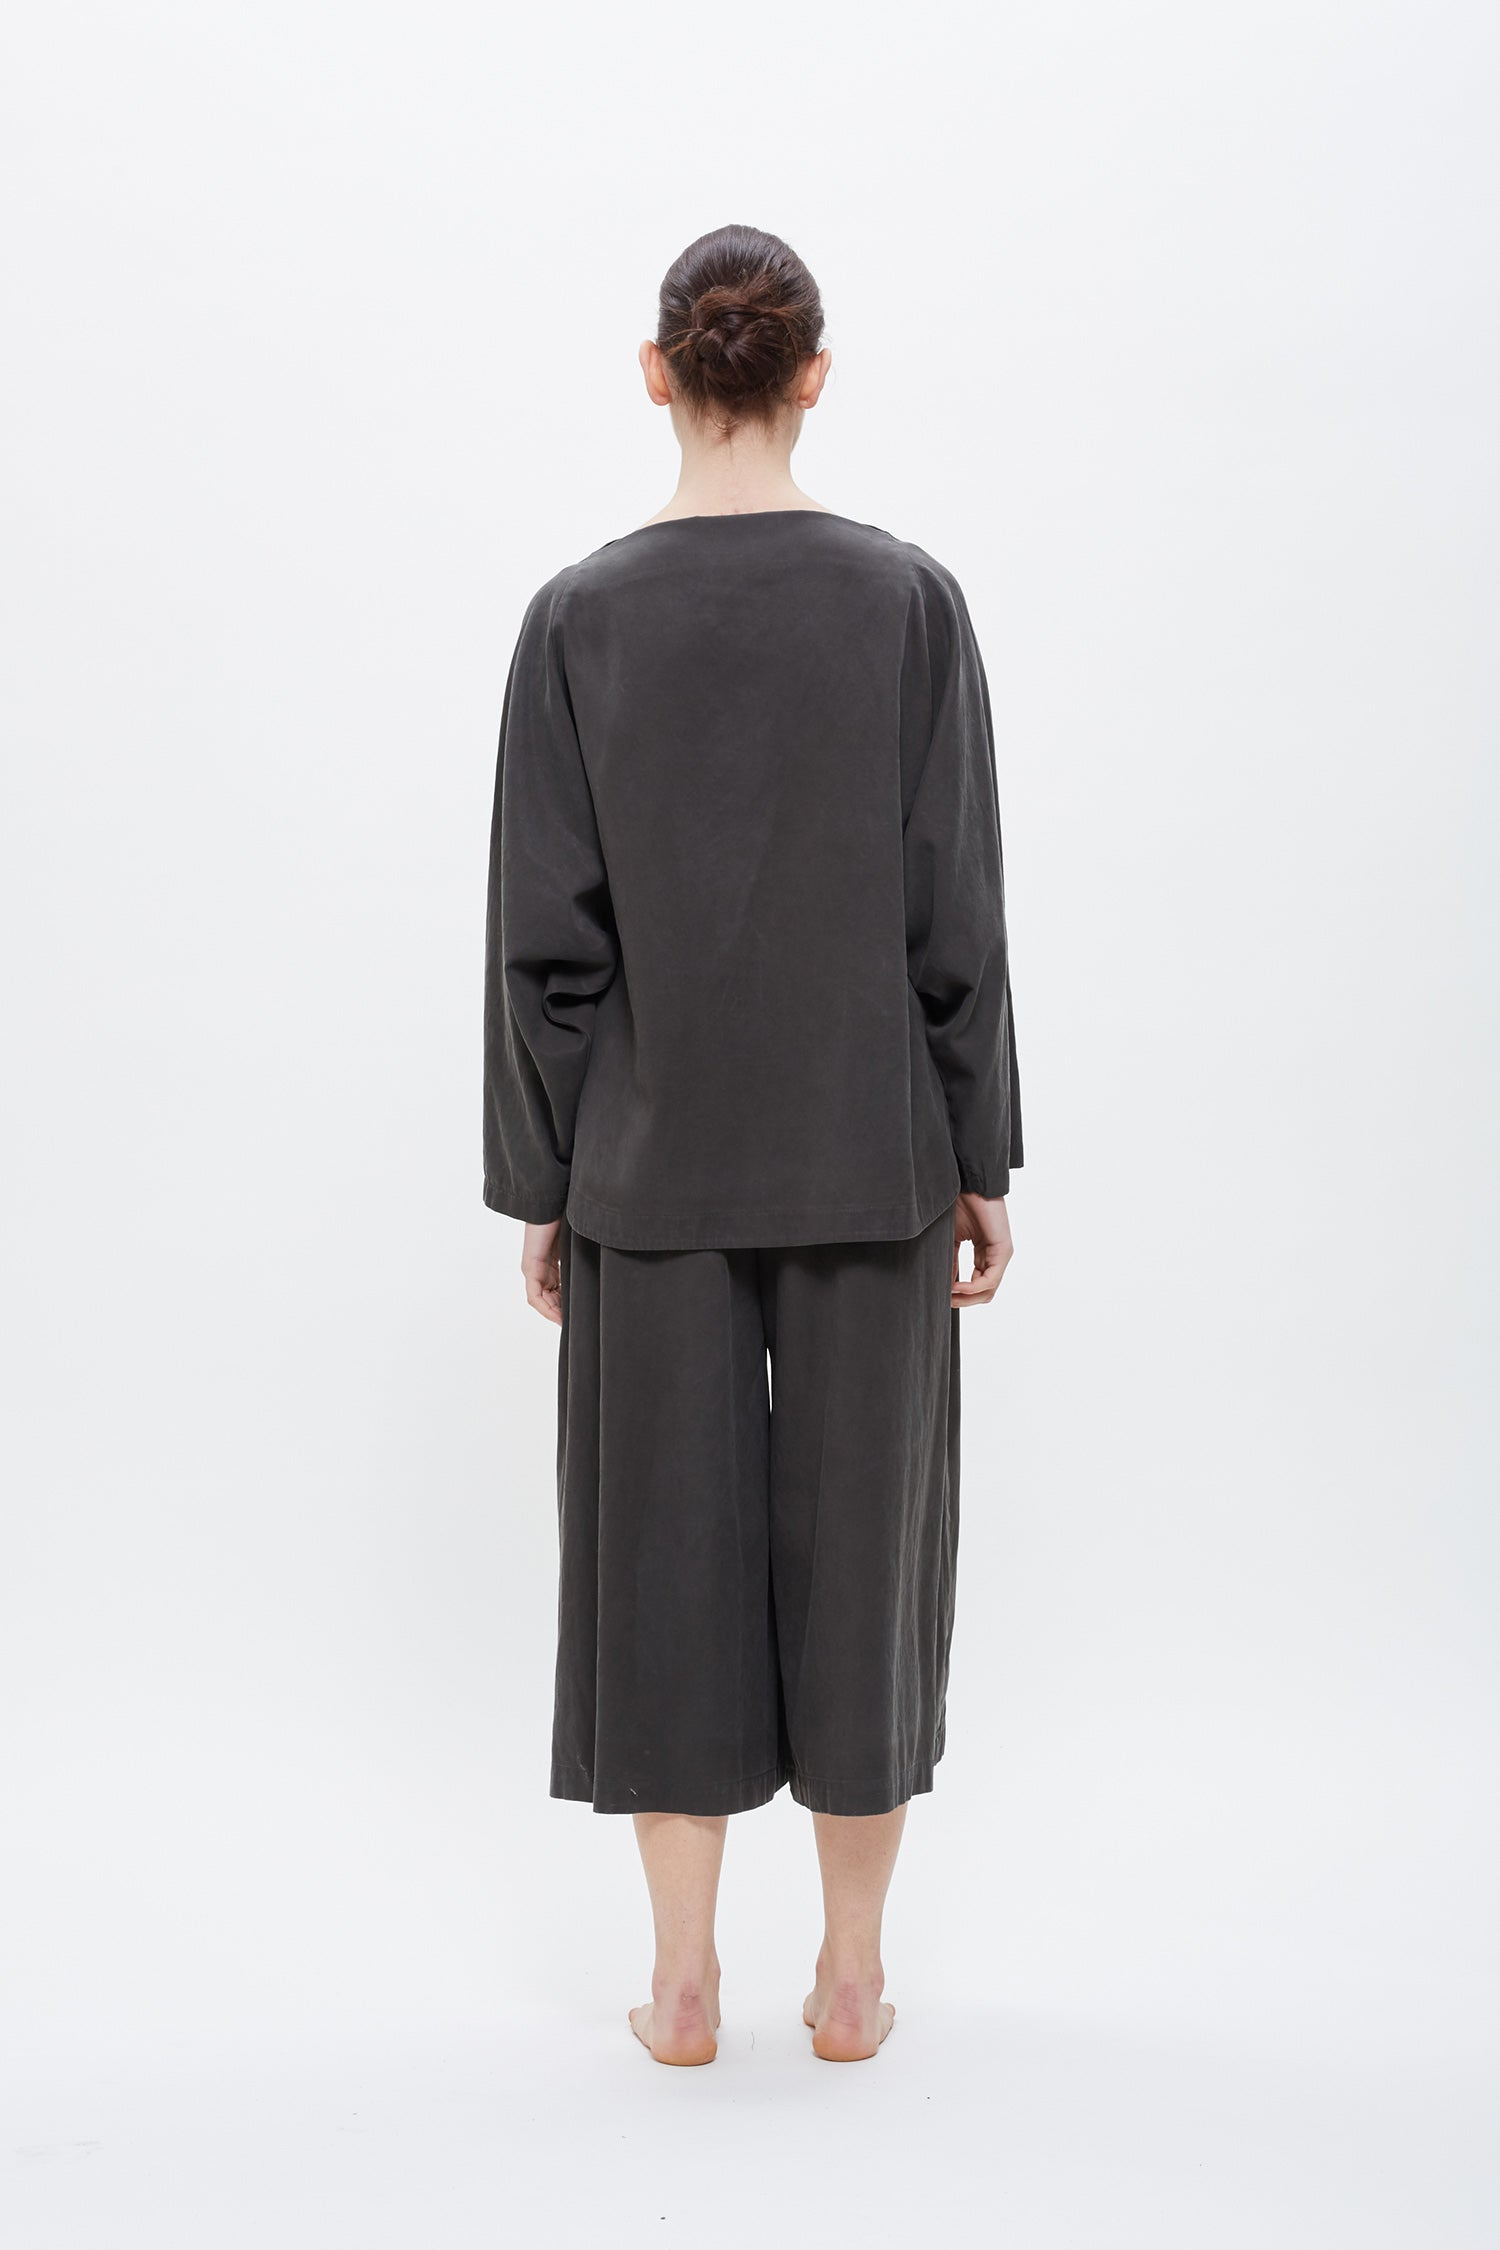 WIDE CULOTTES / TC-WC21 (COTTON TENCEL) / DK. GREY